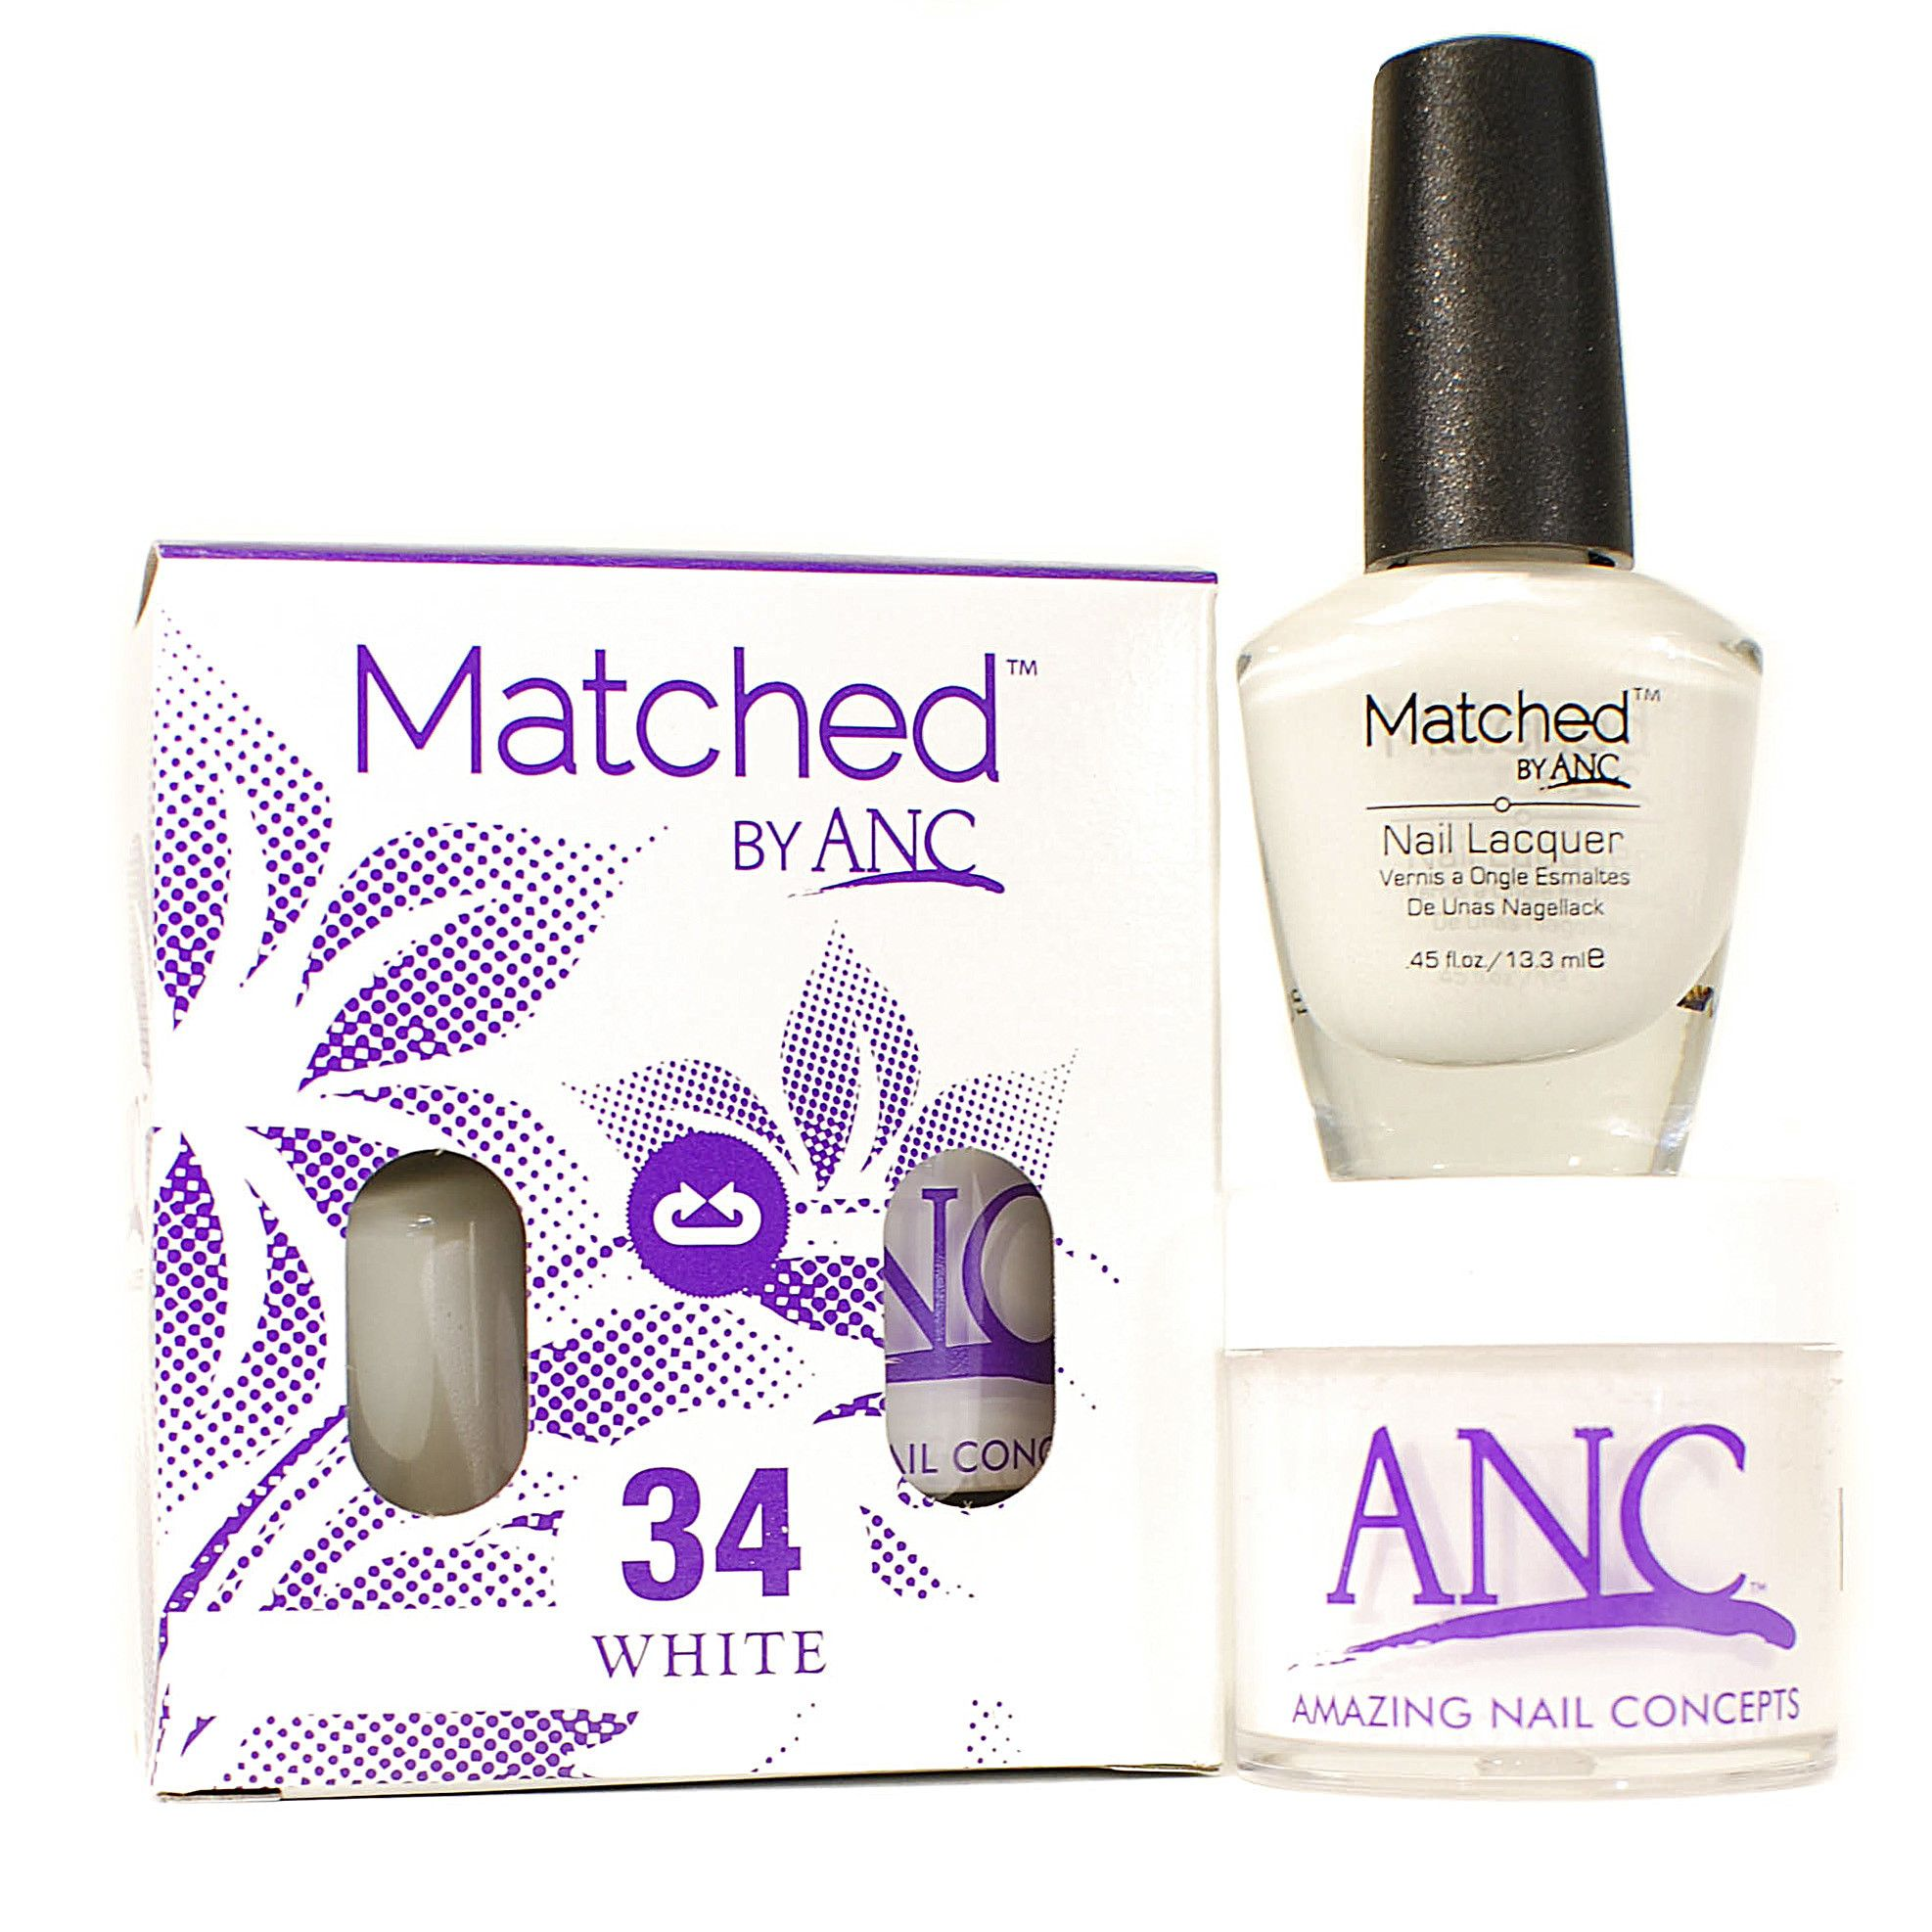 ANC m34 Amazing Nail Concepts Matched kit # 34 white. ANC Powder - Beautiful, natural look, healthy for your clients, safe for your environment. -Odorless -Gentle for your nail bed -Light Weight -Flexible -Natural Environmentally Friendly -Durable Glossy Finish -Healthy for your natural nails by adding Calcium and Vitamin E.